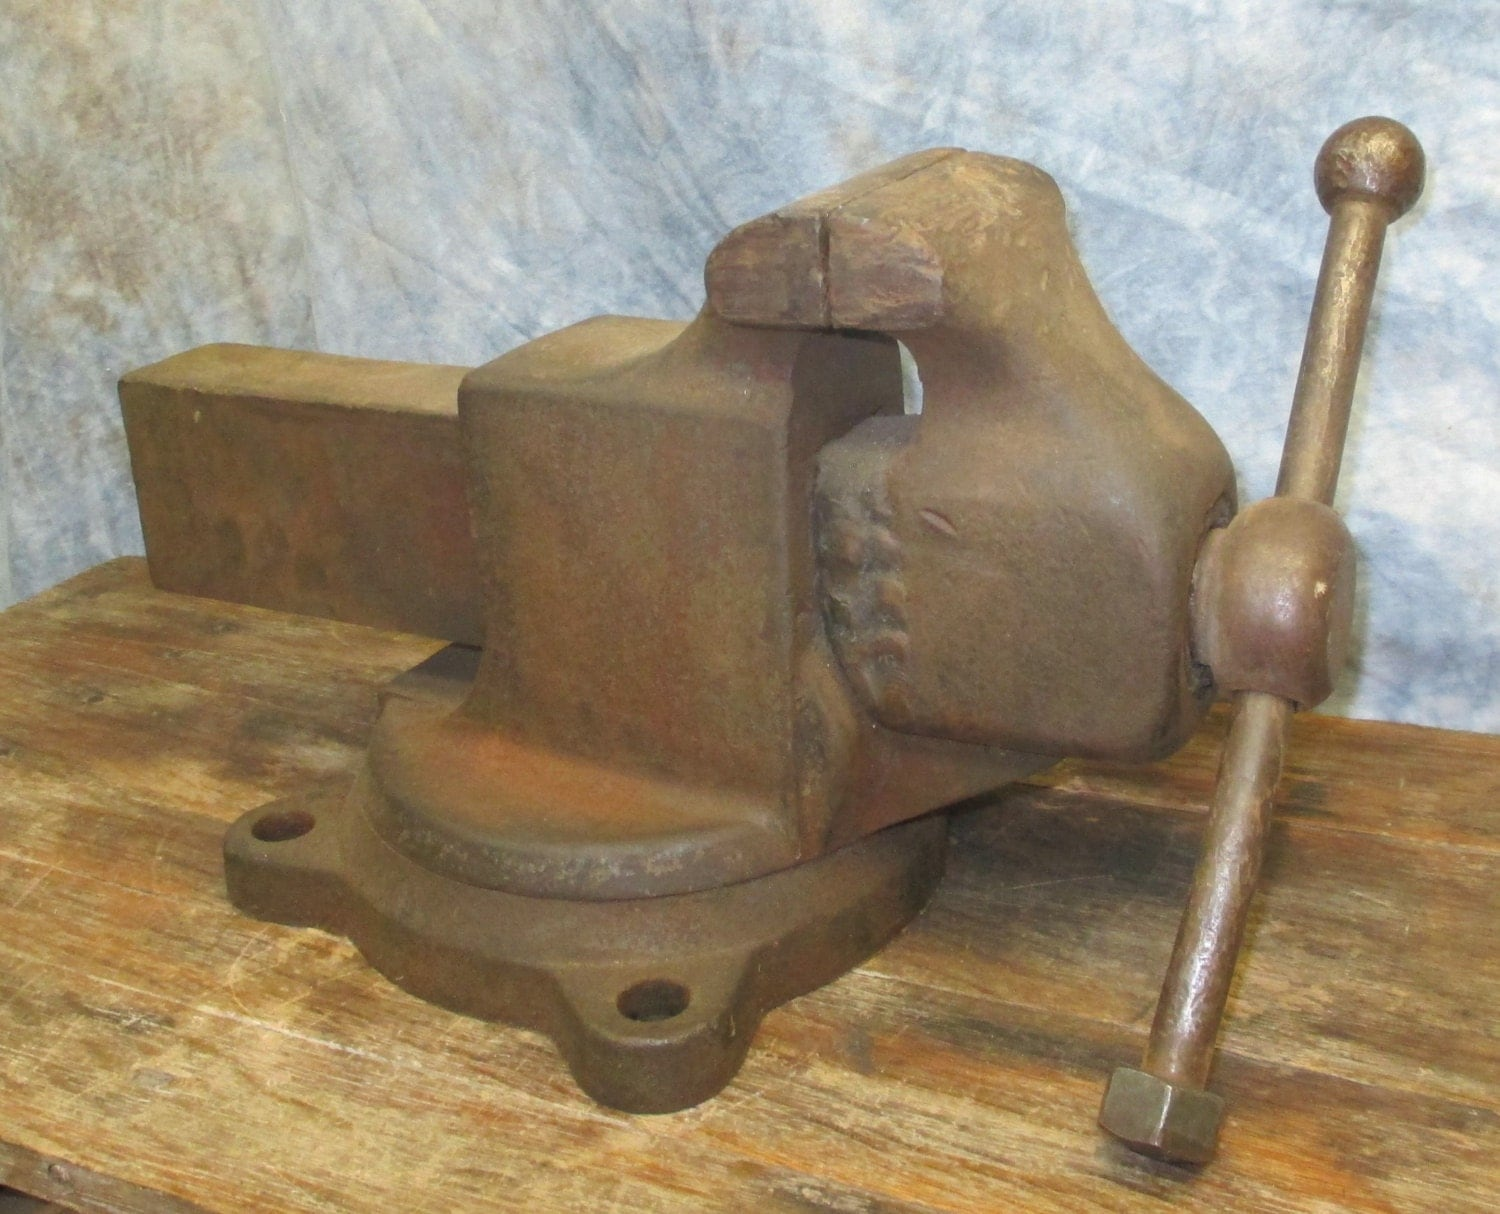 4 Jaw Swivel Bench Table Swivel Vise Blacksmith Anvil Vintage